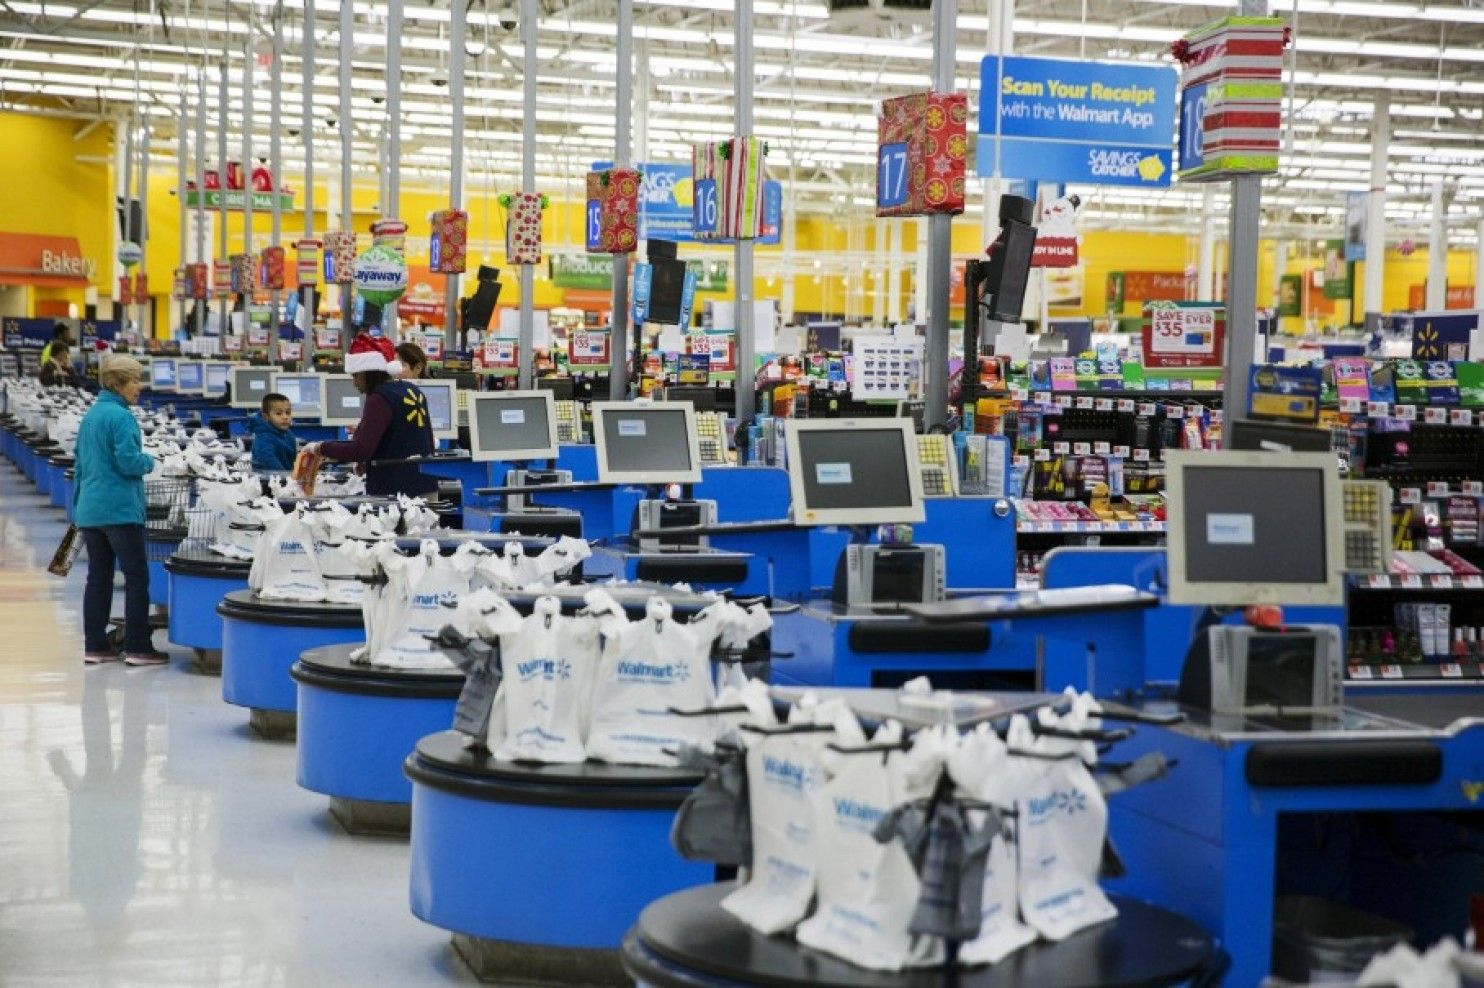 Walmart is rolling out big changes to worker schedules